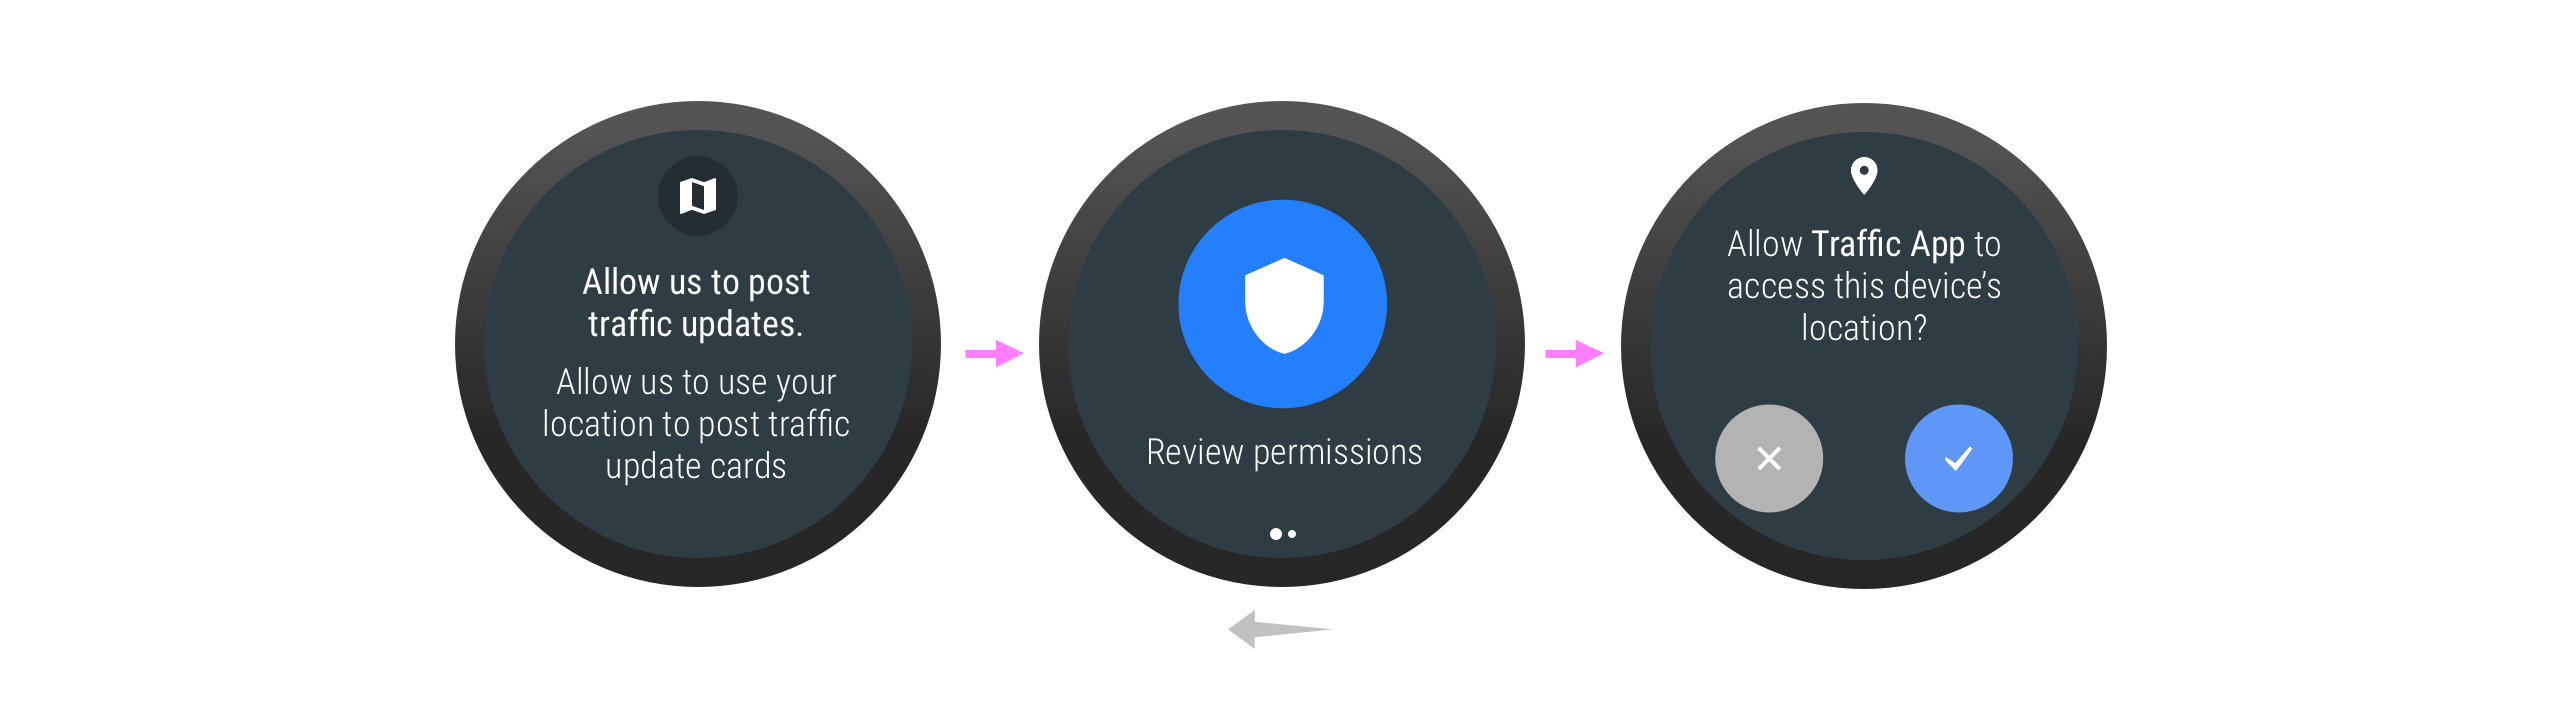 The user may need to grant a permission when indirectly interacting with an app, via a           service.